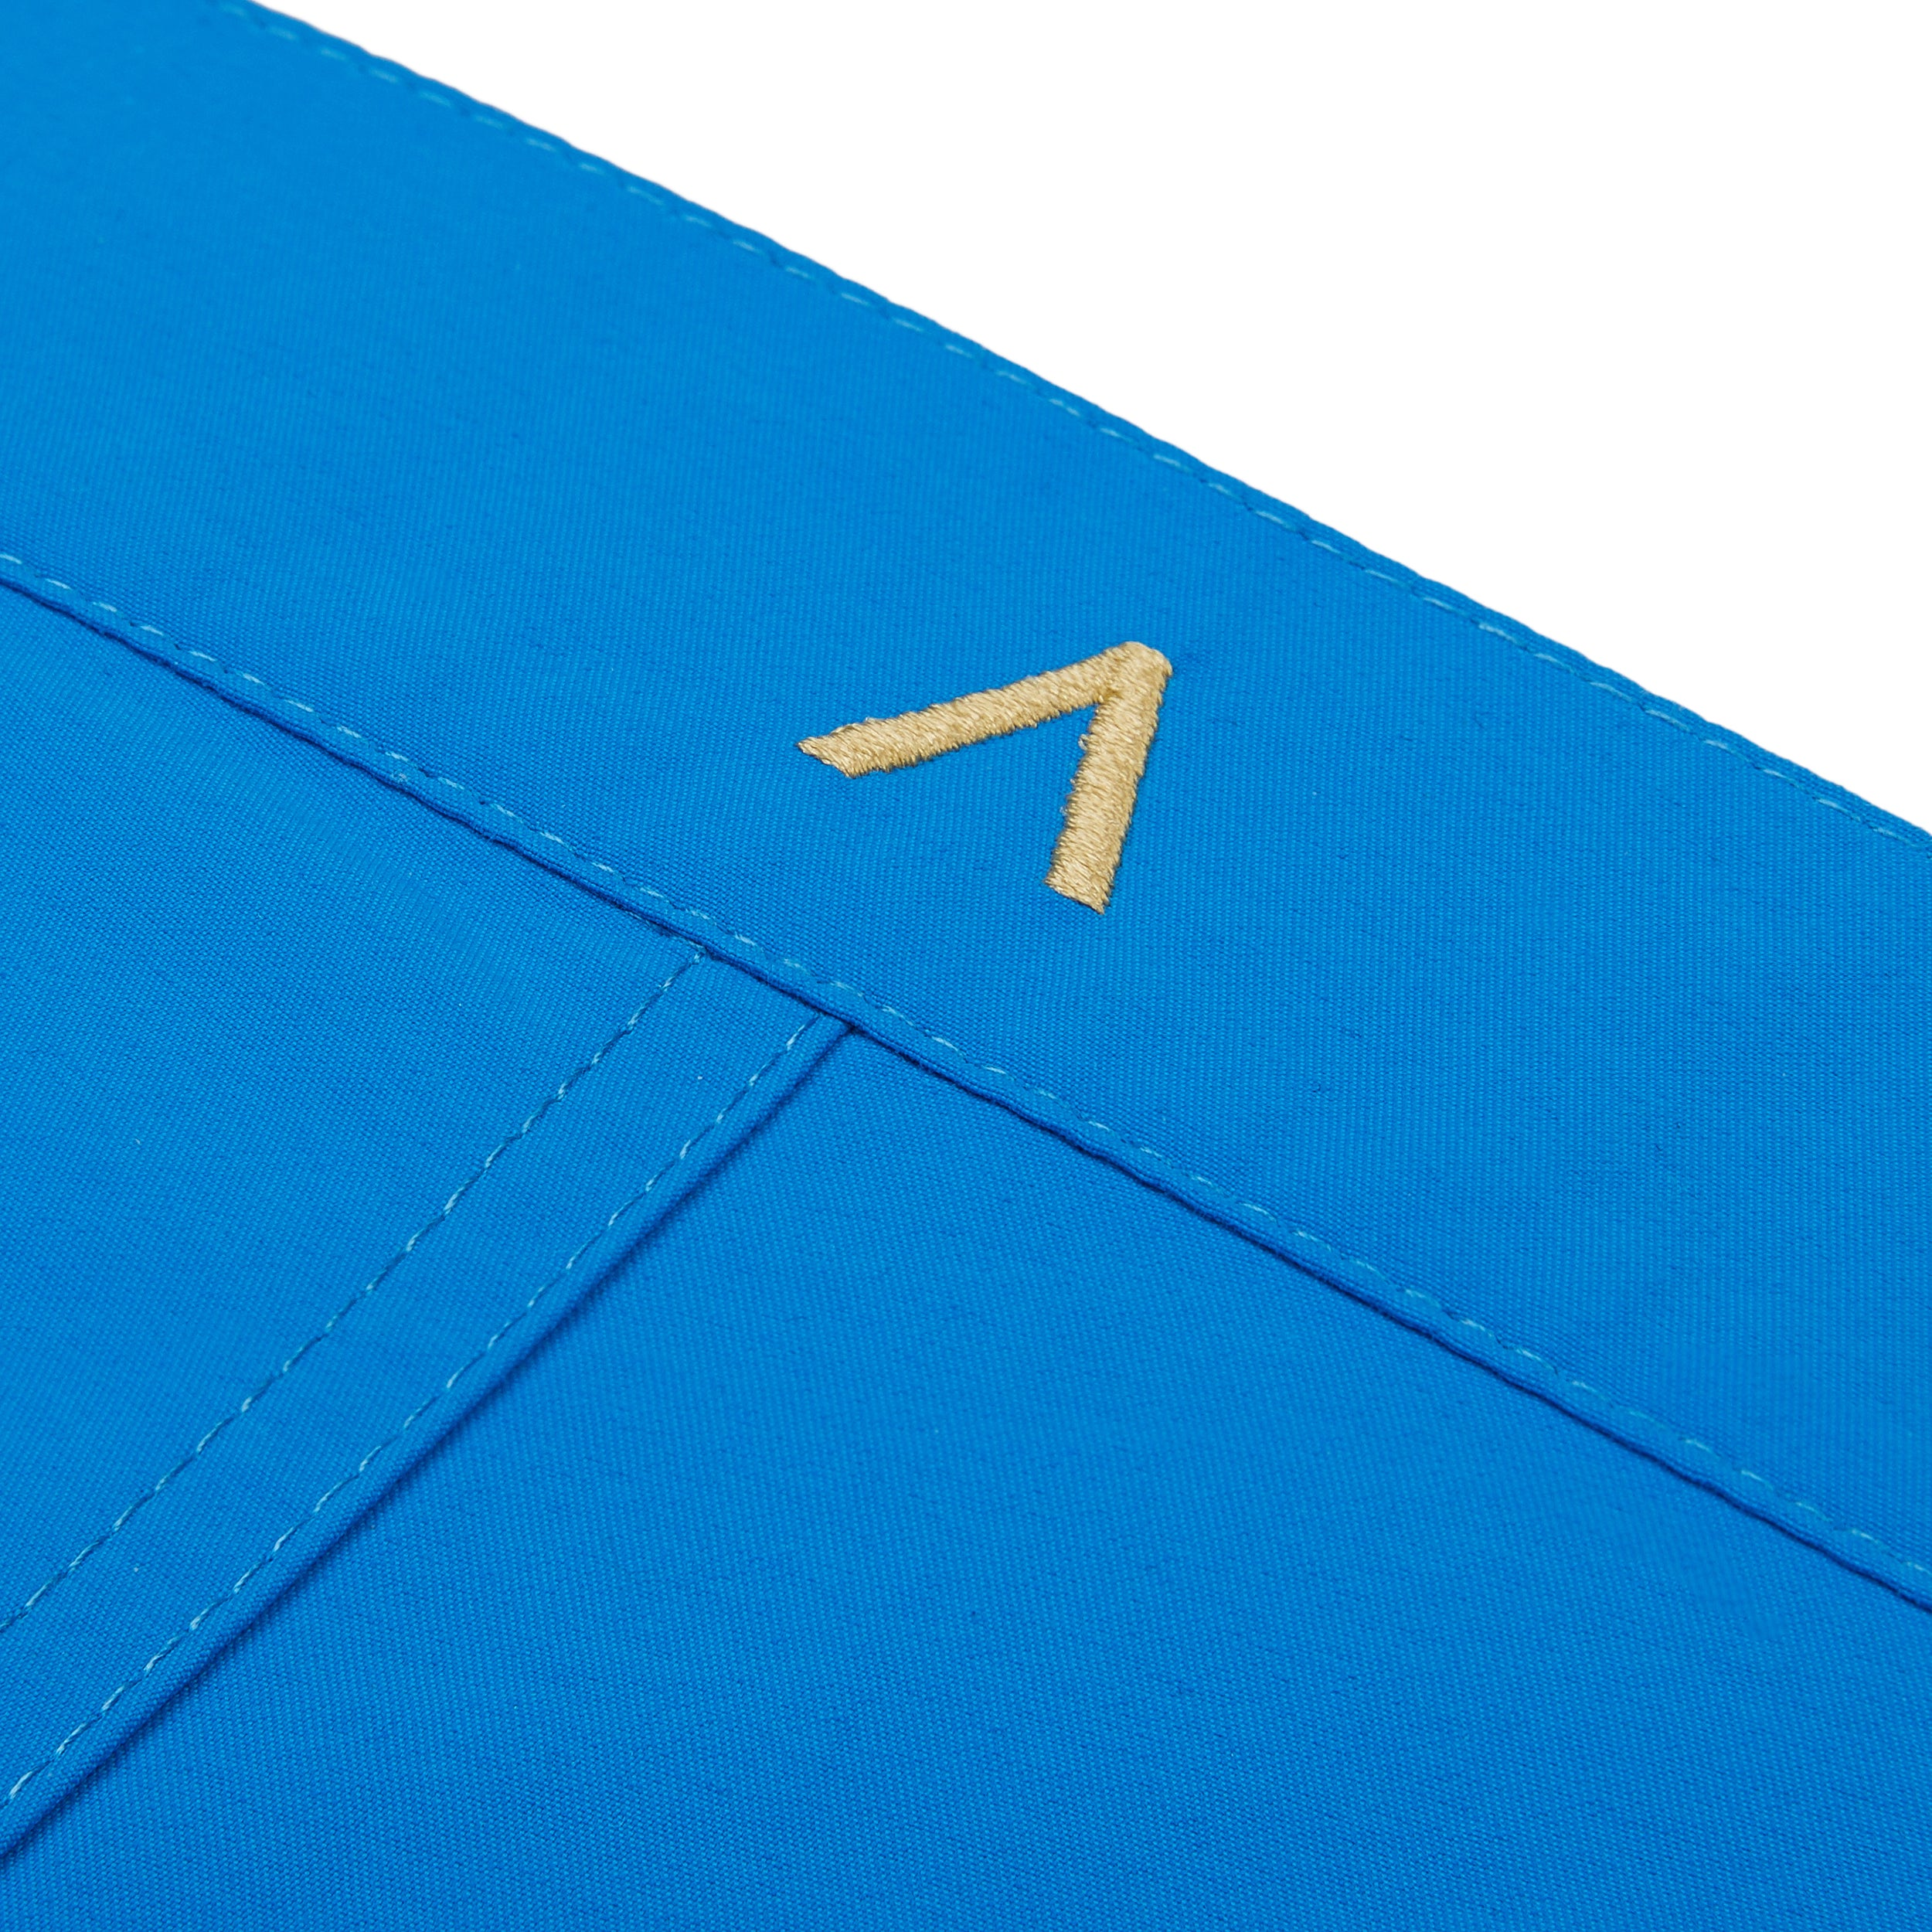 Electric Blue Swim Shorts - GOLDFIN Swim Shorts